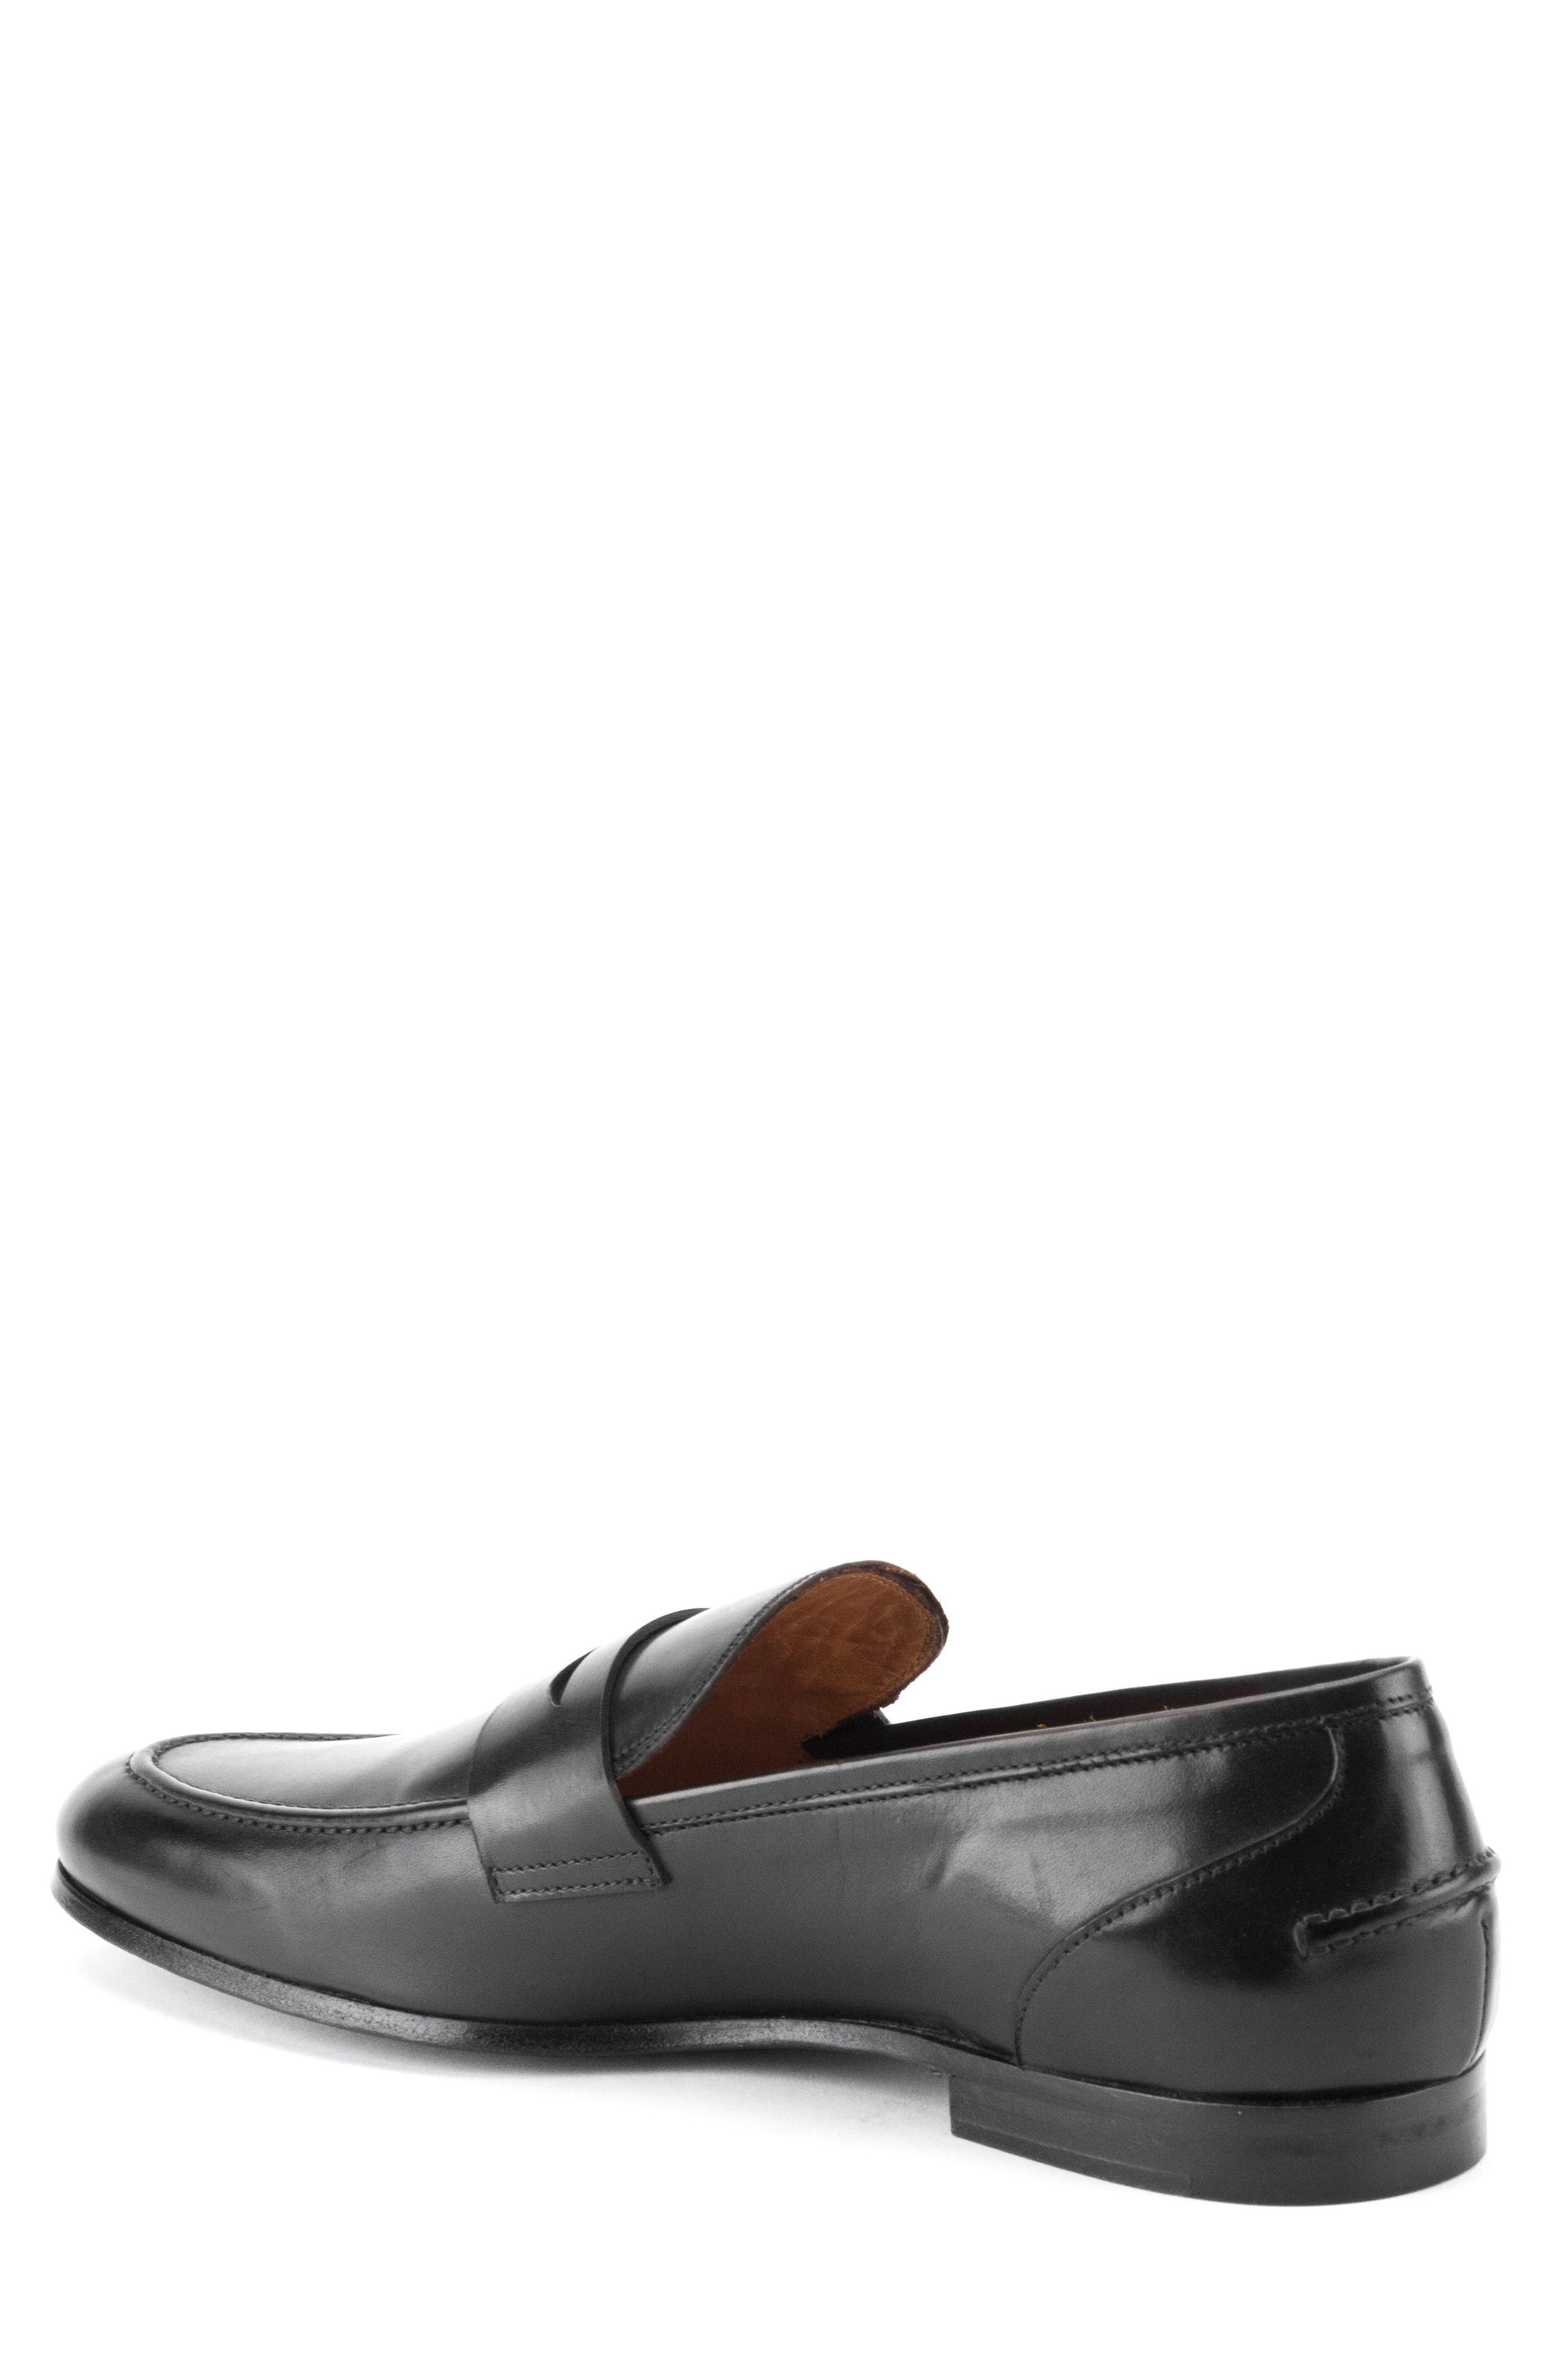 Coleman Apron Toe Penny Loafer,                             Alternate thumbnail 2, color,                             BLACK LEATHER